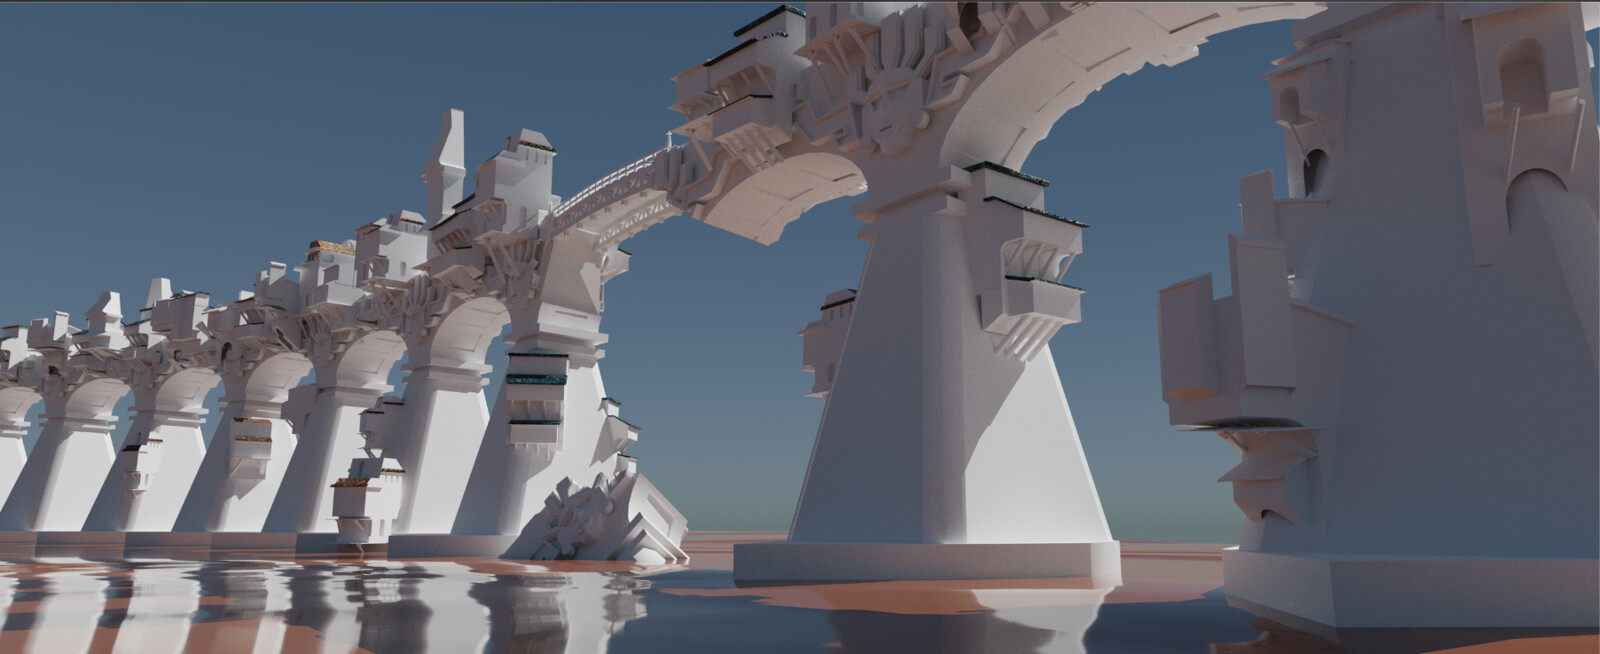 3D sketch for lighting reference and establishing perspective.